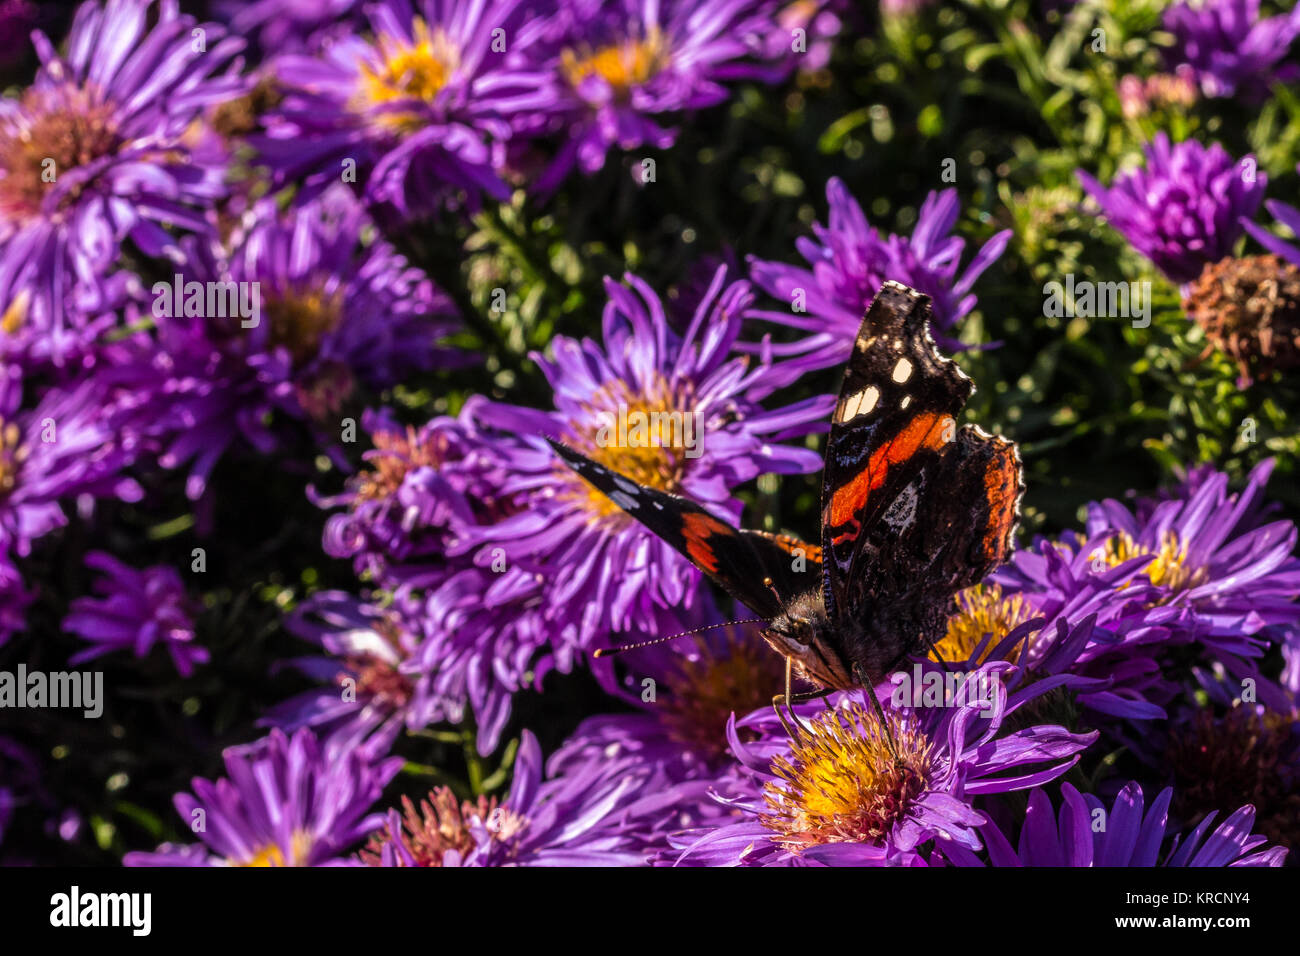 Black butterfly on violet flower on the green field of the park - Stock Image